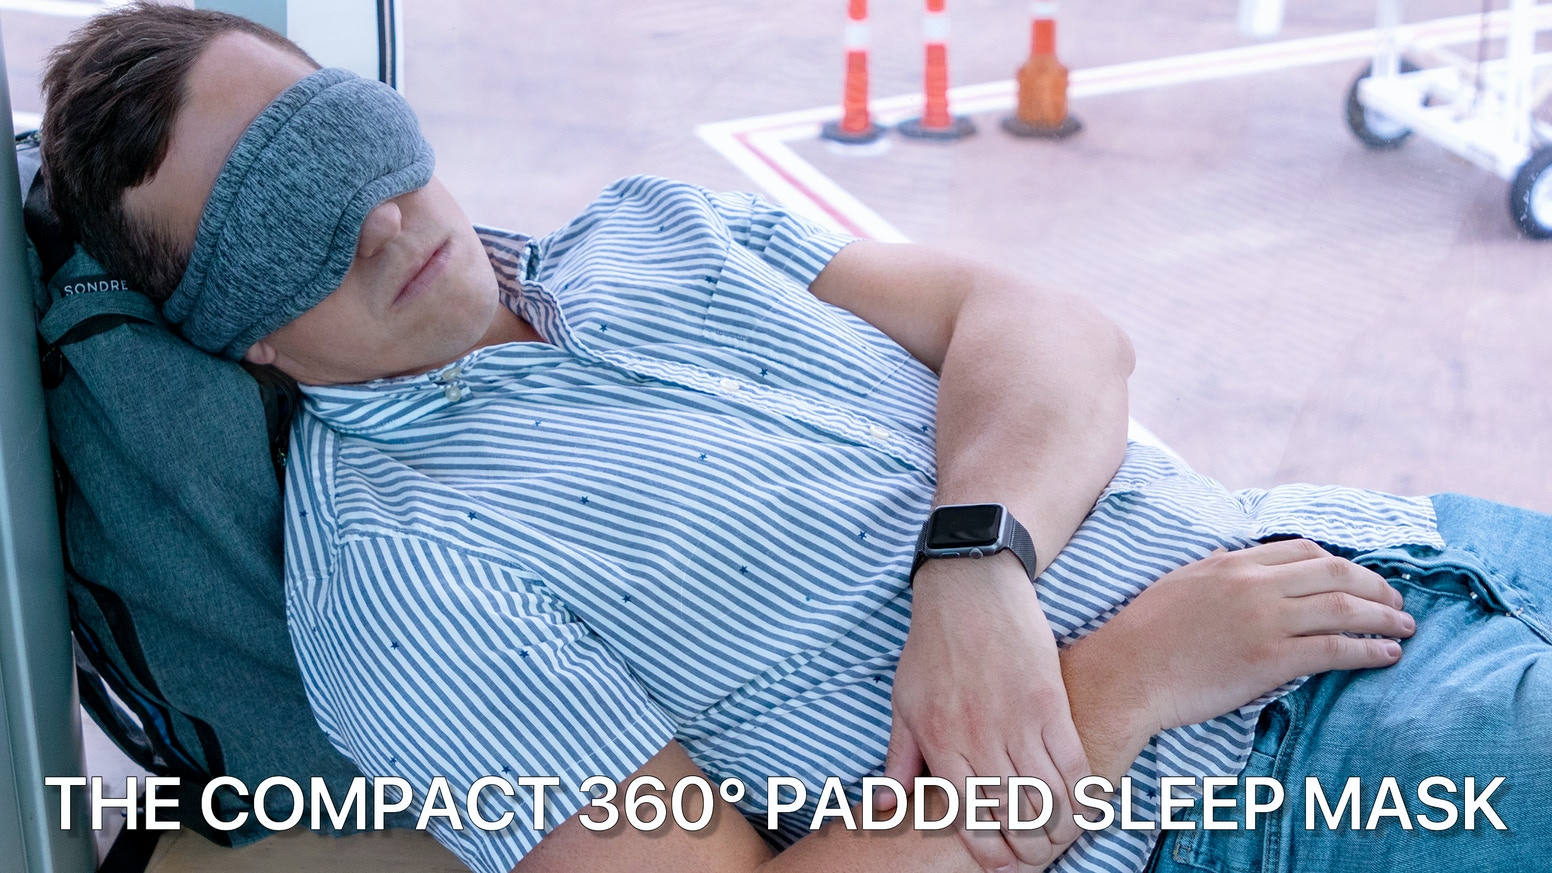 The compact & adjustable sleep mask with 360° microbead padding and water resistant carrying case for the best power nap anywhere!